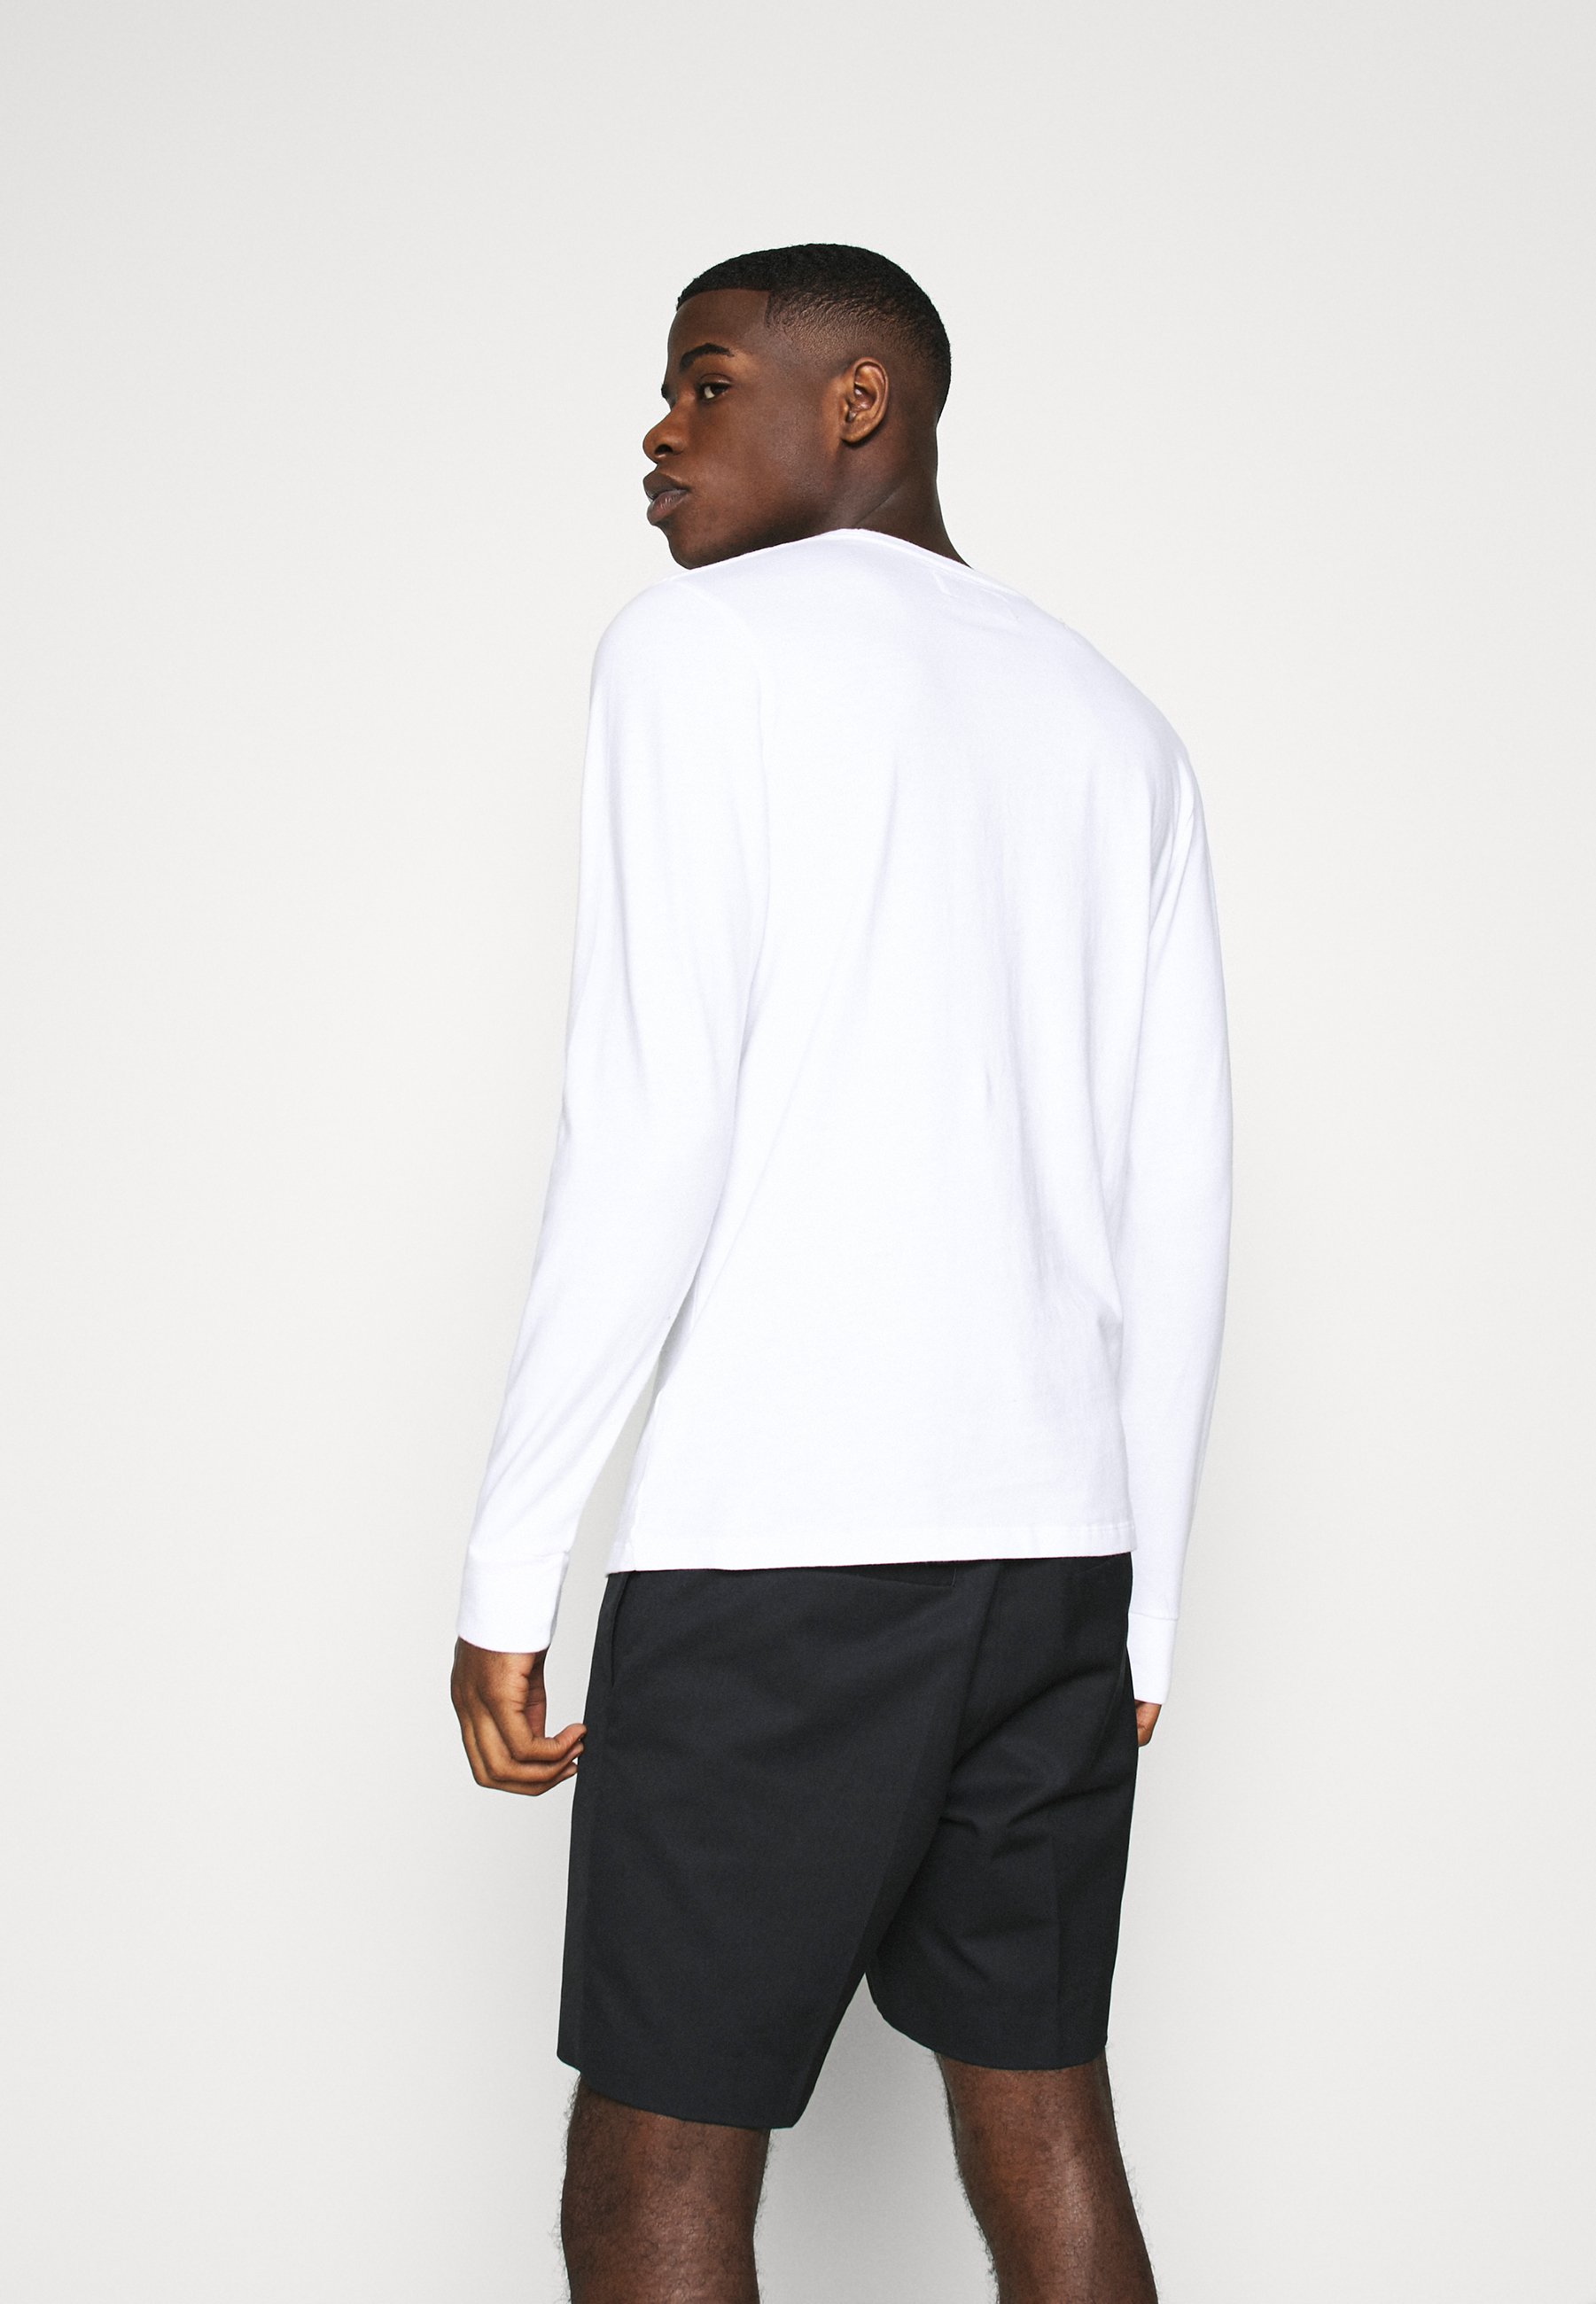 Abercrombie & Fitch Fall Icon Crews - Topper Langermet White/mørkegrå-melert